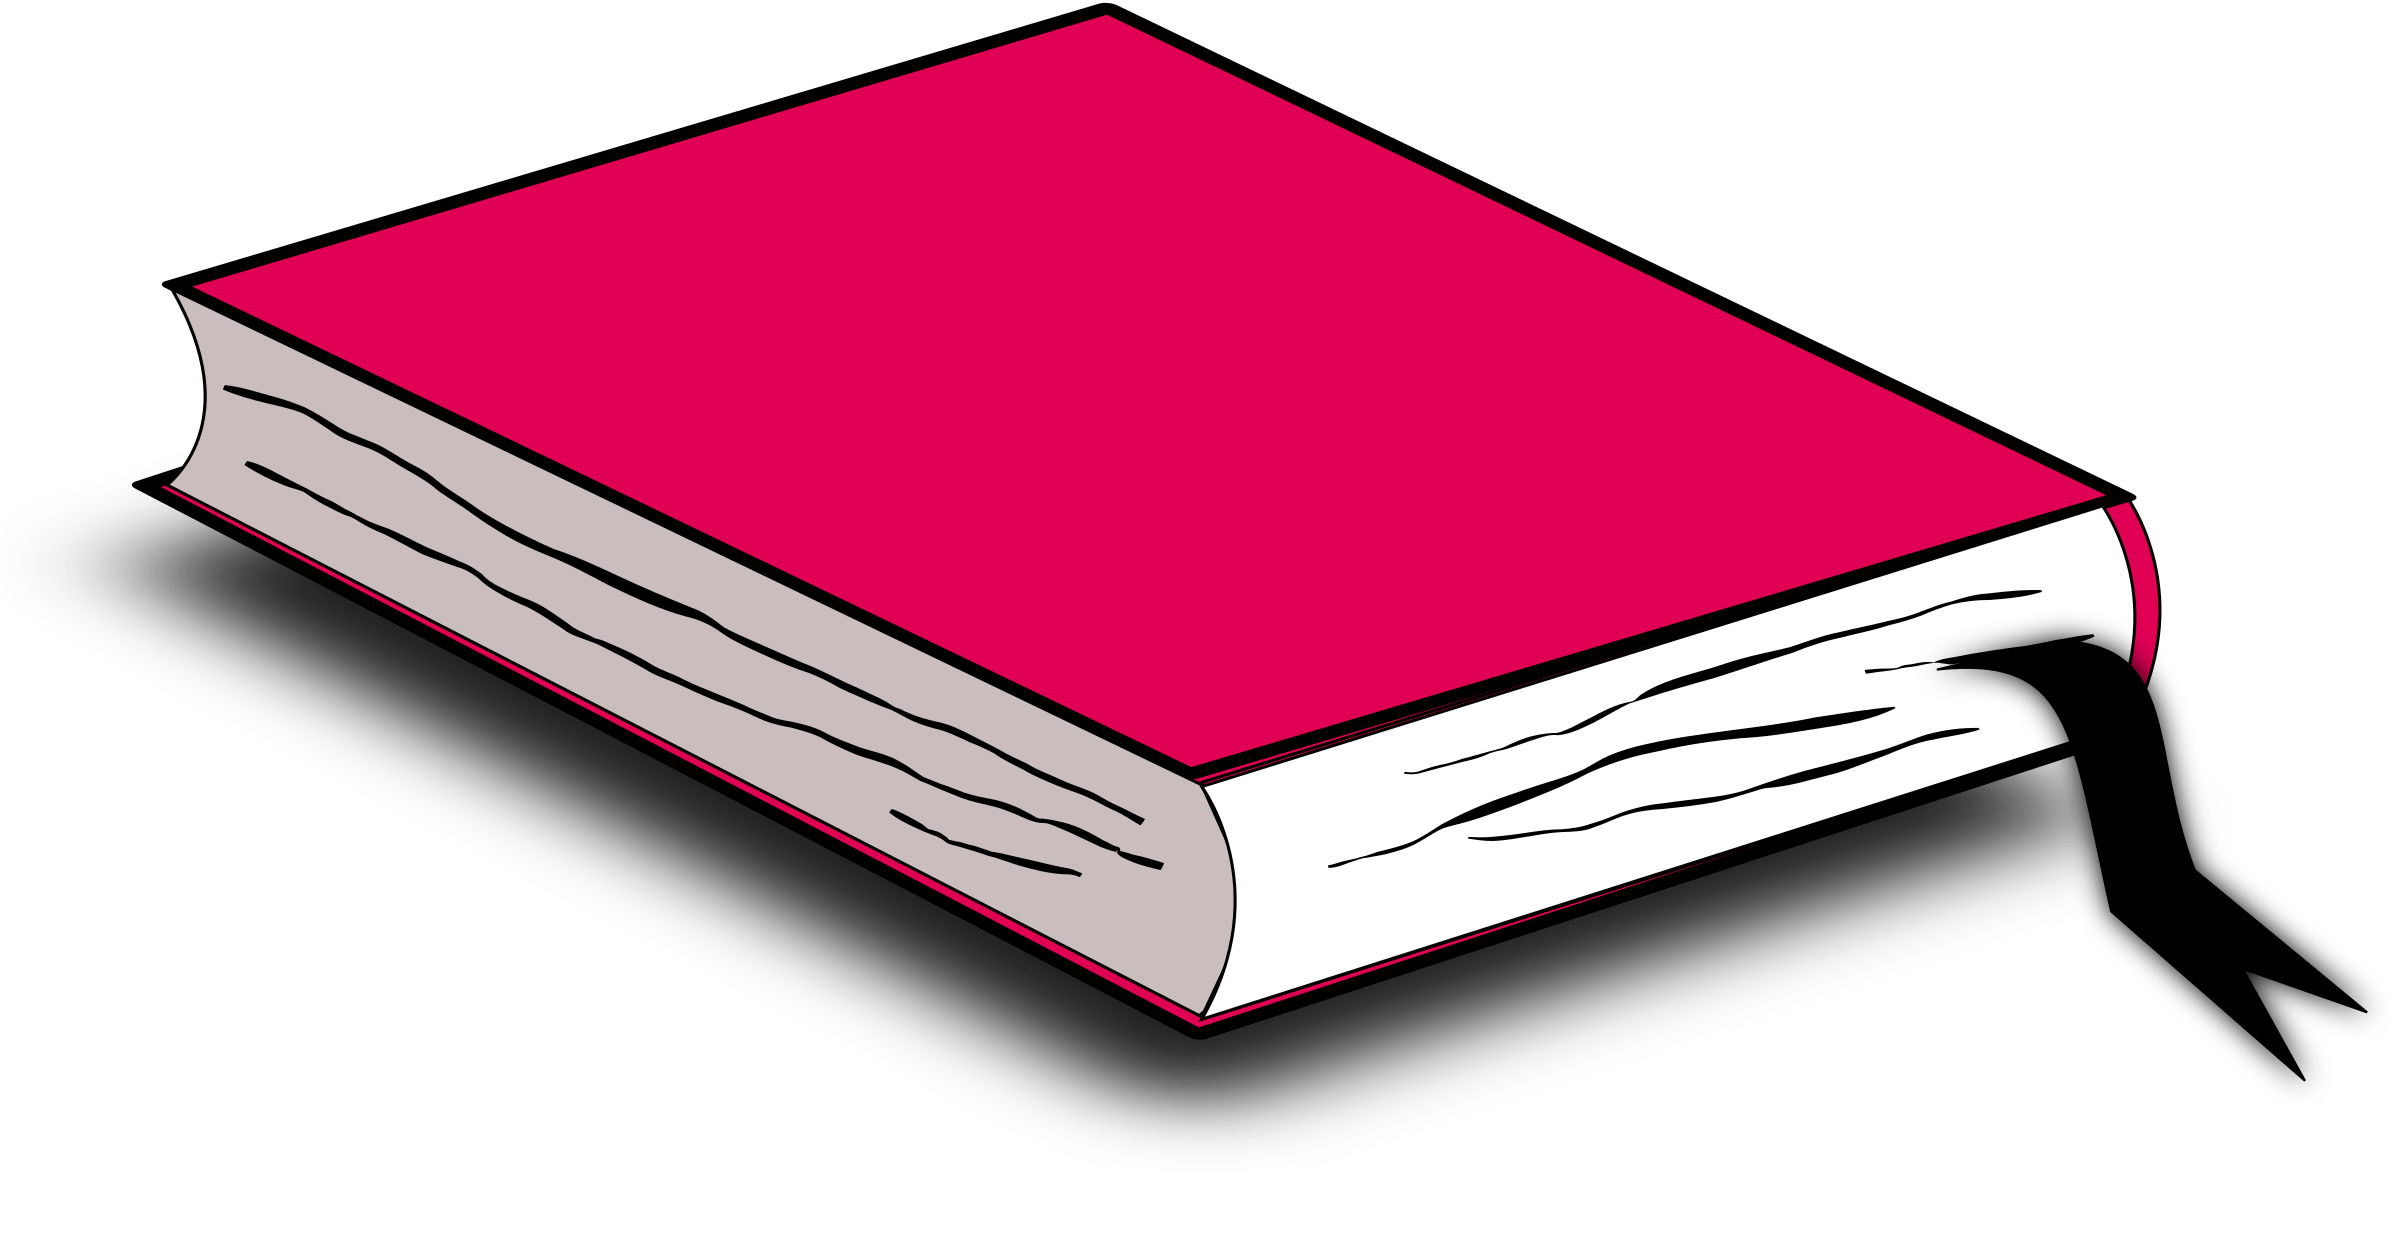 Clipart - Book image download